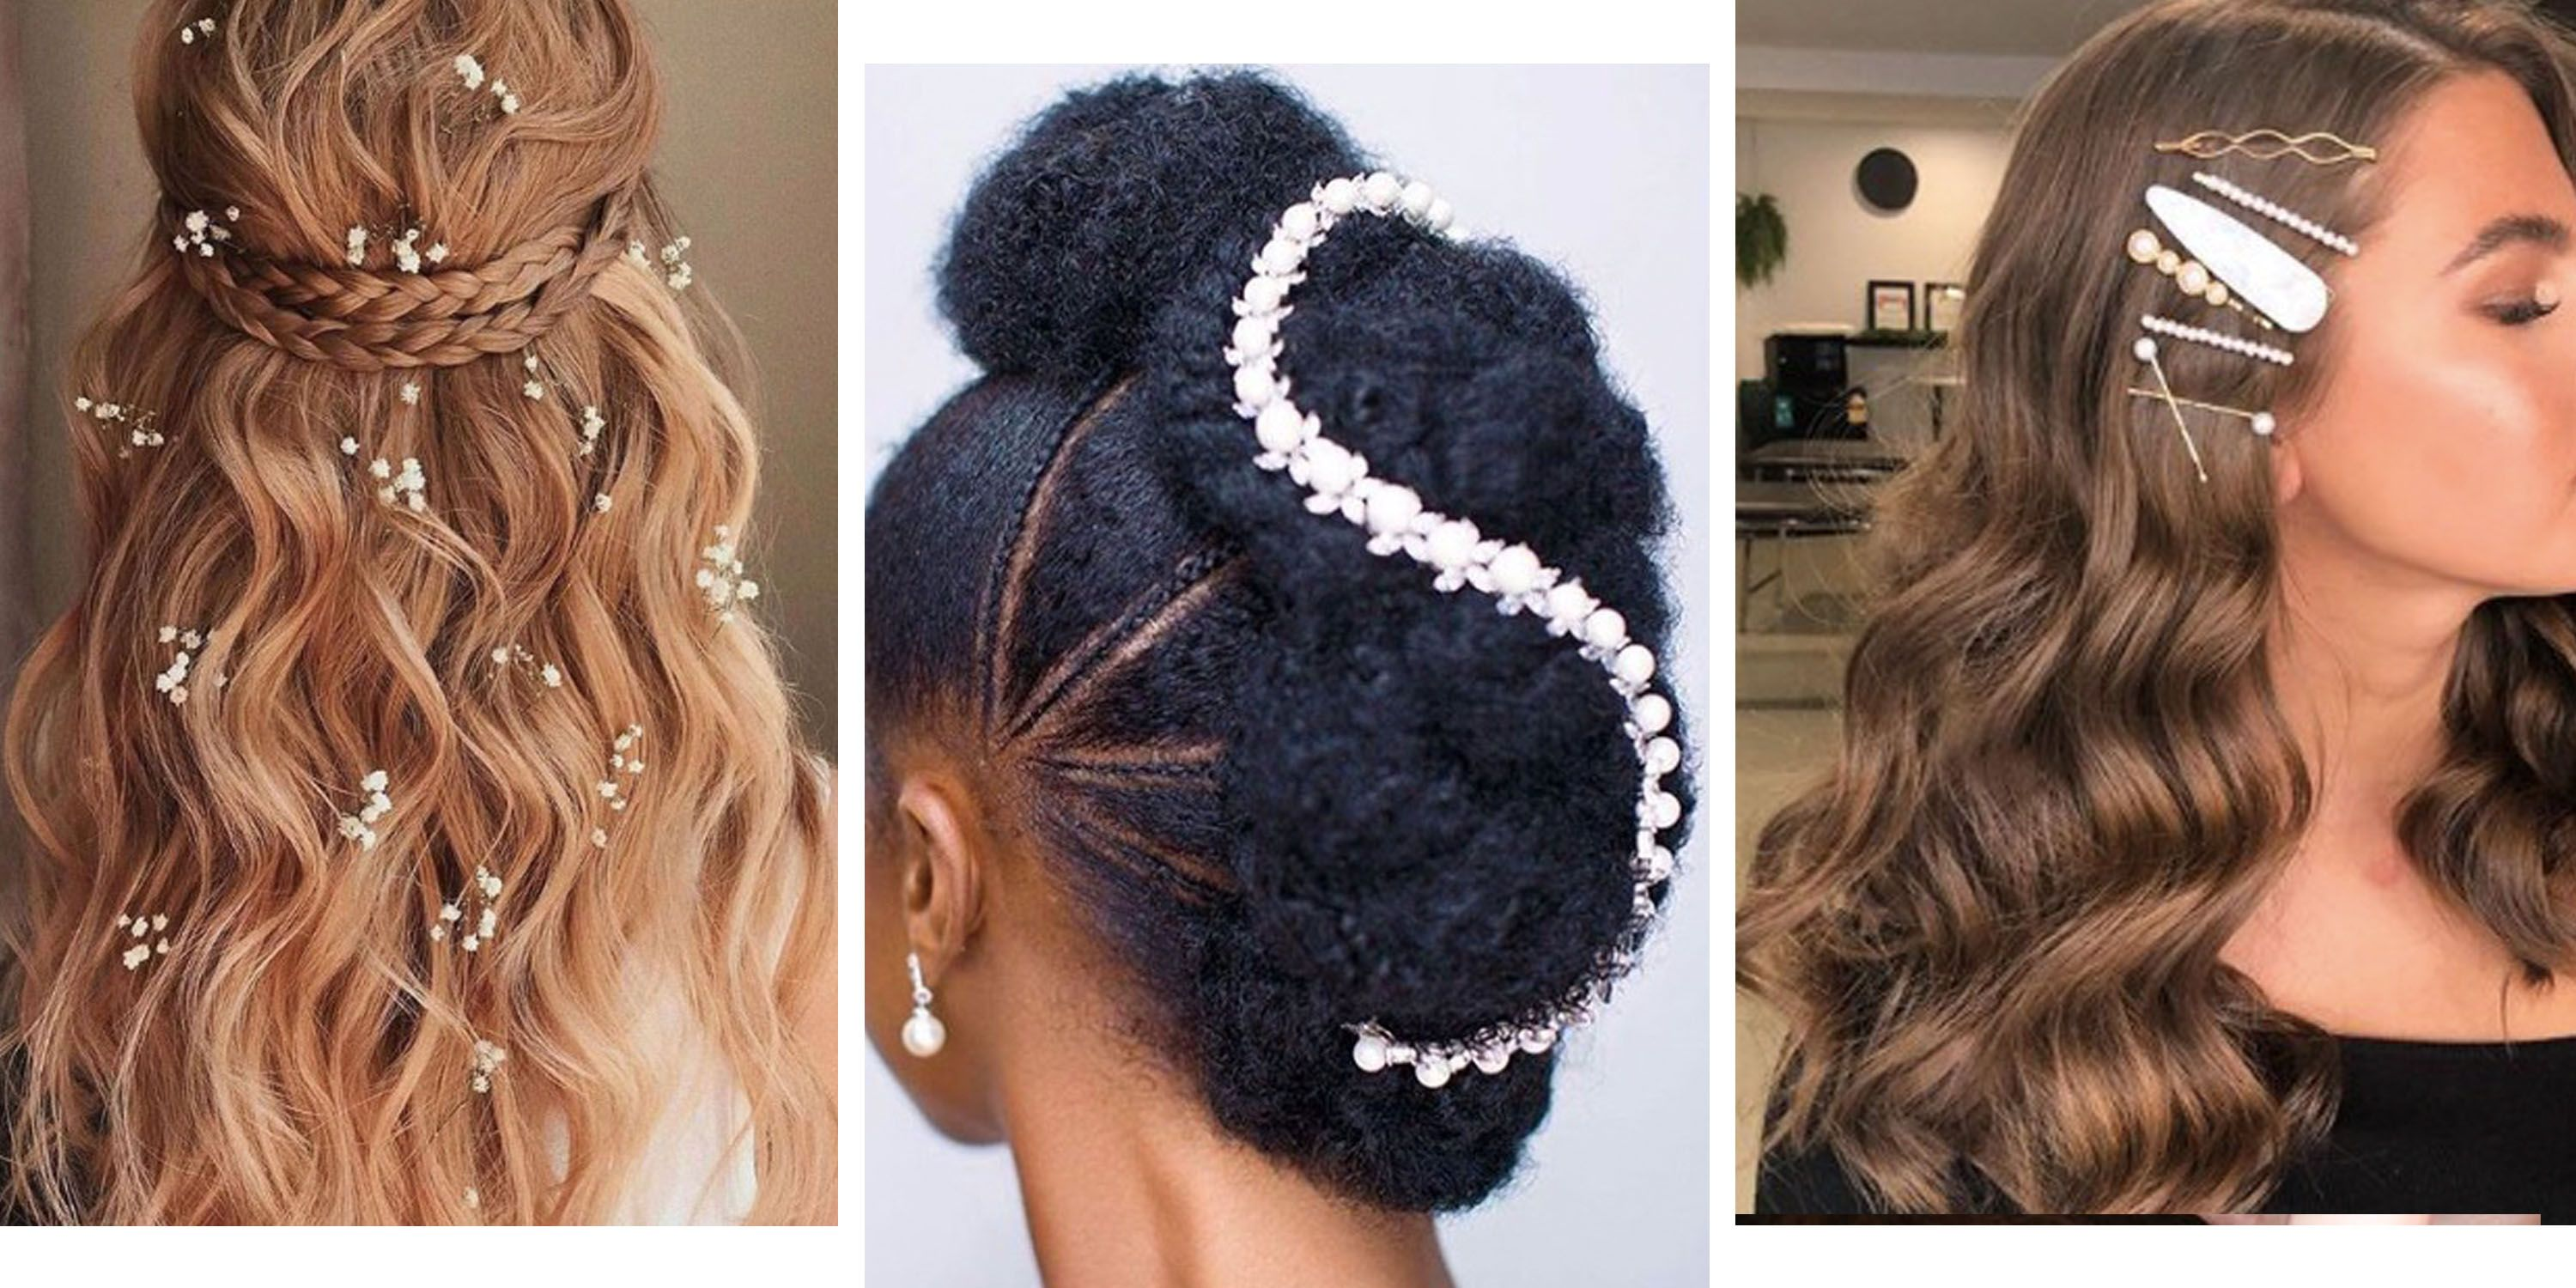 Bridesmaid Hair Inspiration 2020 17 Of The Best Wedding Styles